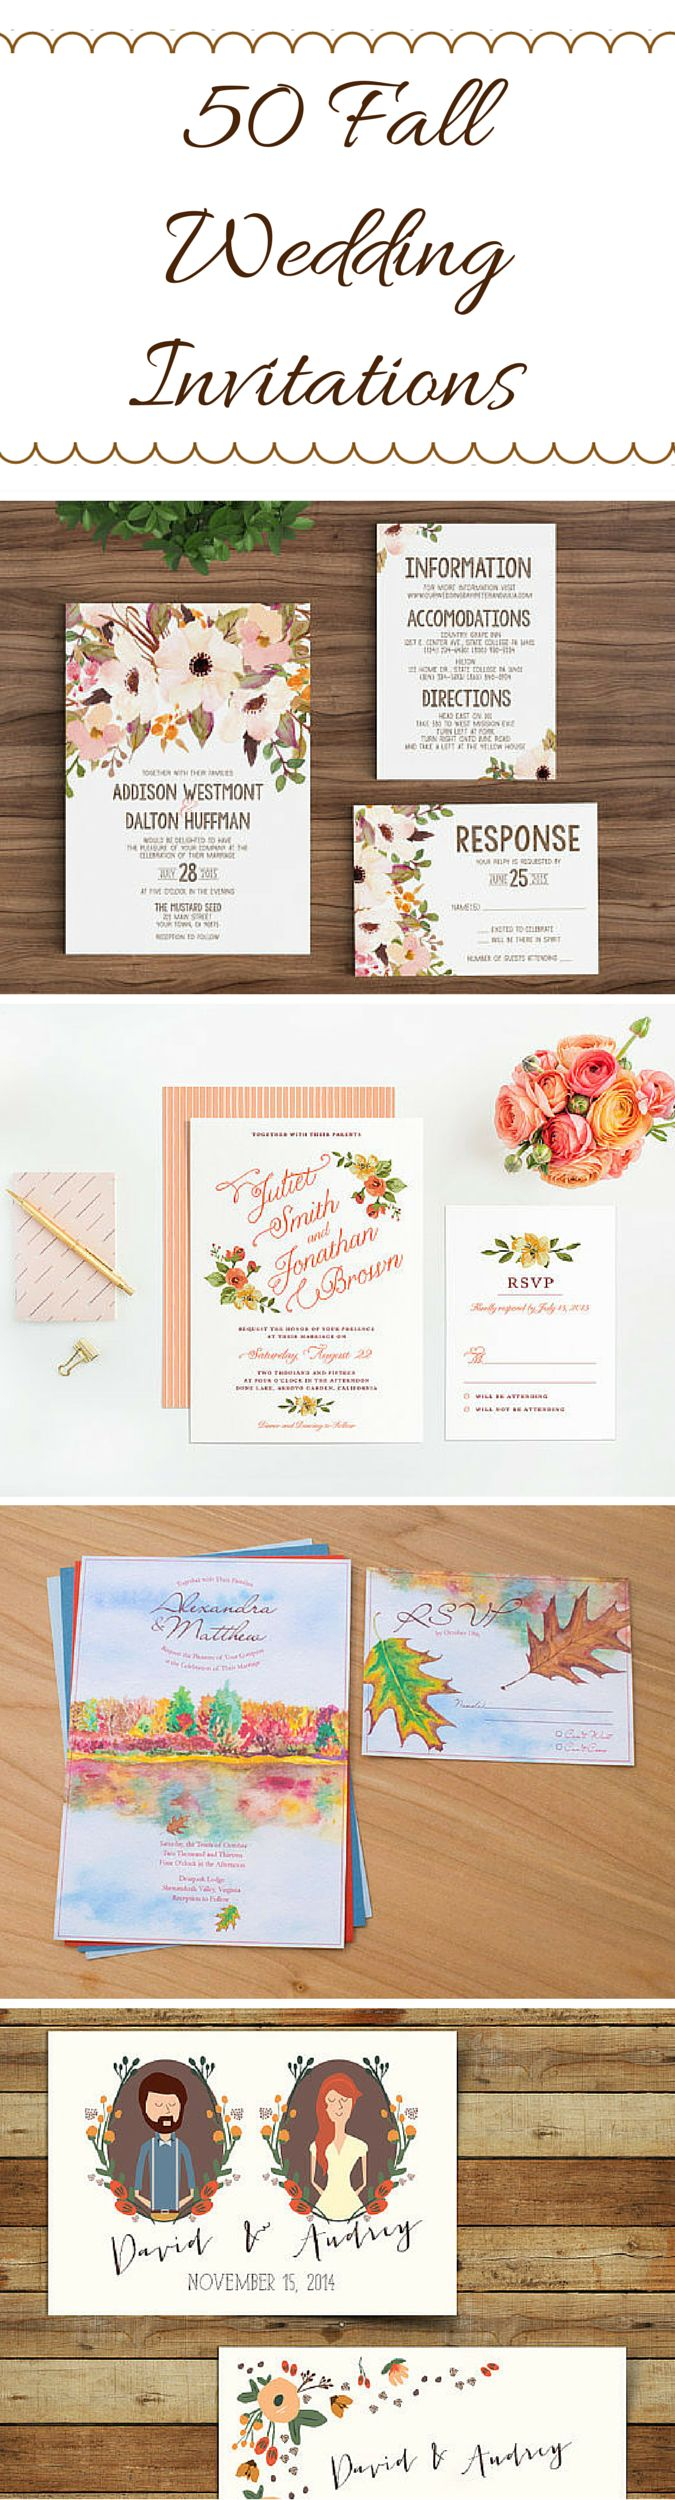 50 Fall Wedding Invitations every bride will love | | ••Marriage ...